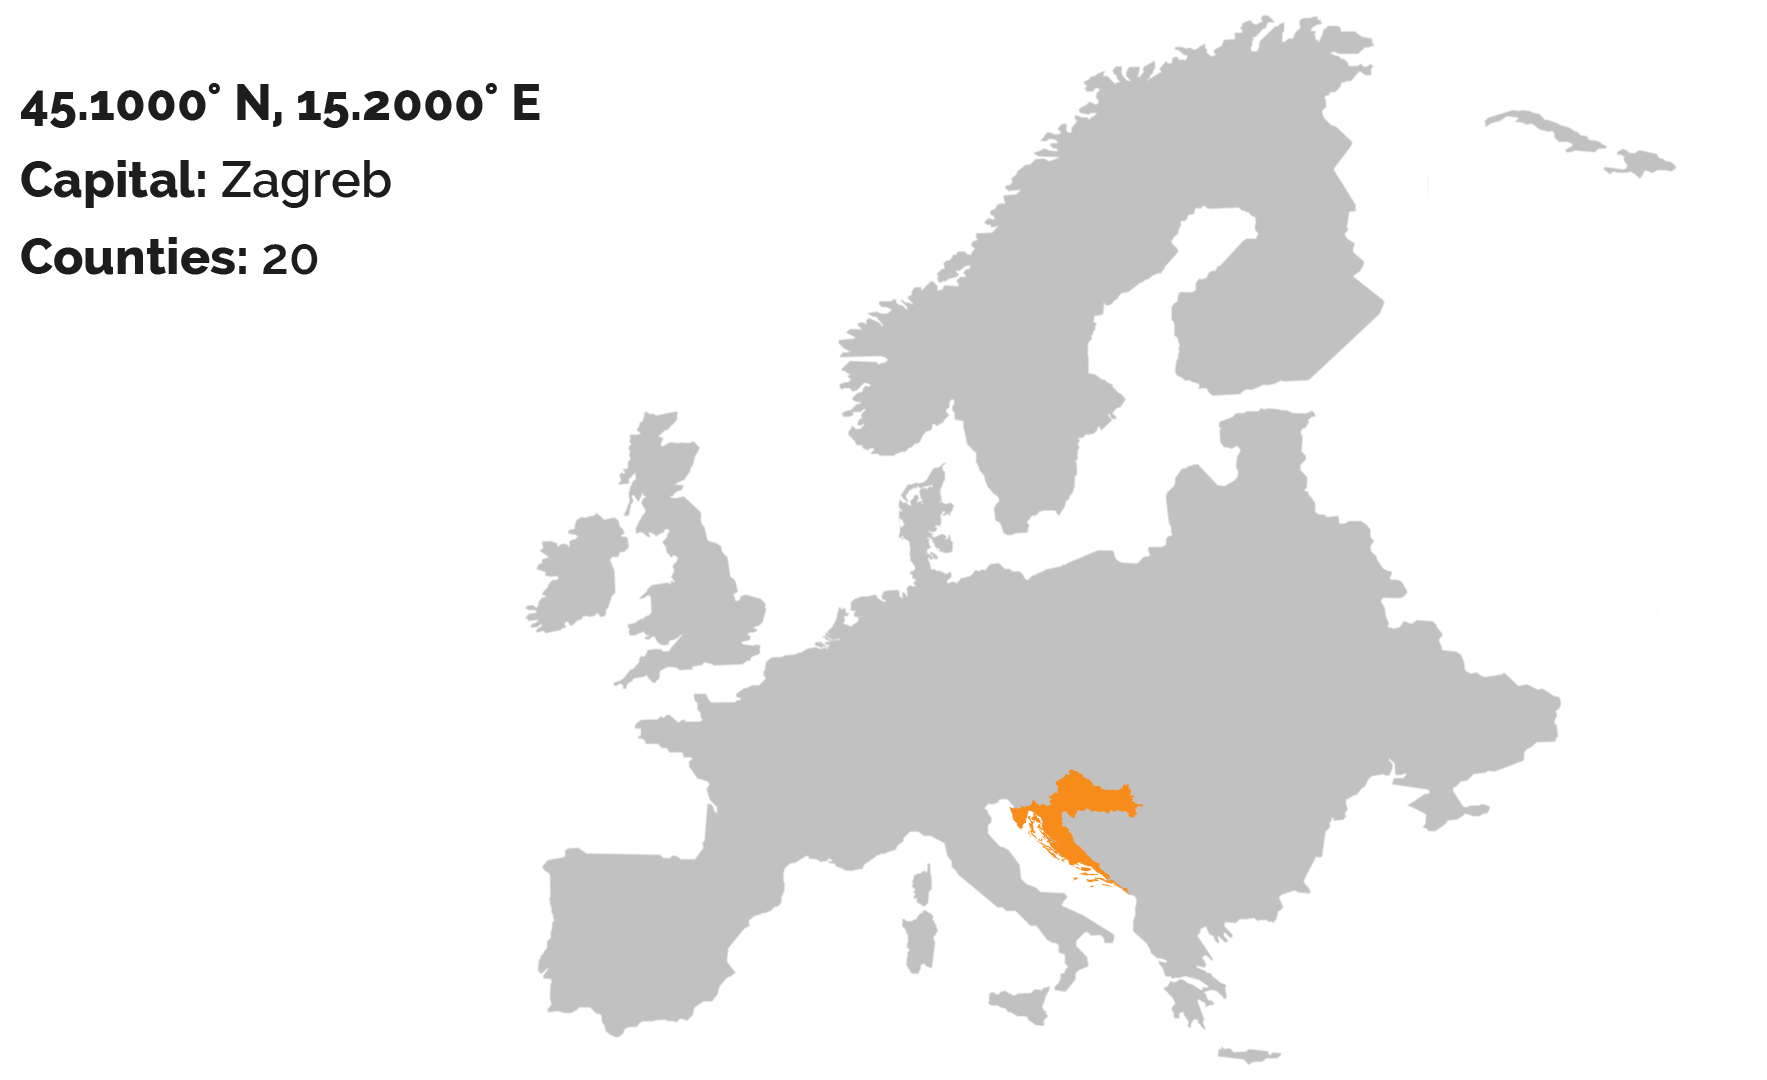 The gray map of the Europe with a Croatia colored in orange color. The map is on white background.